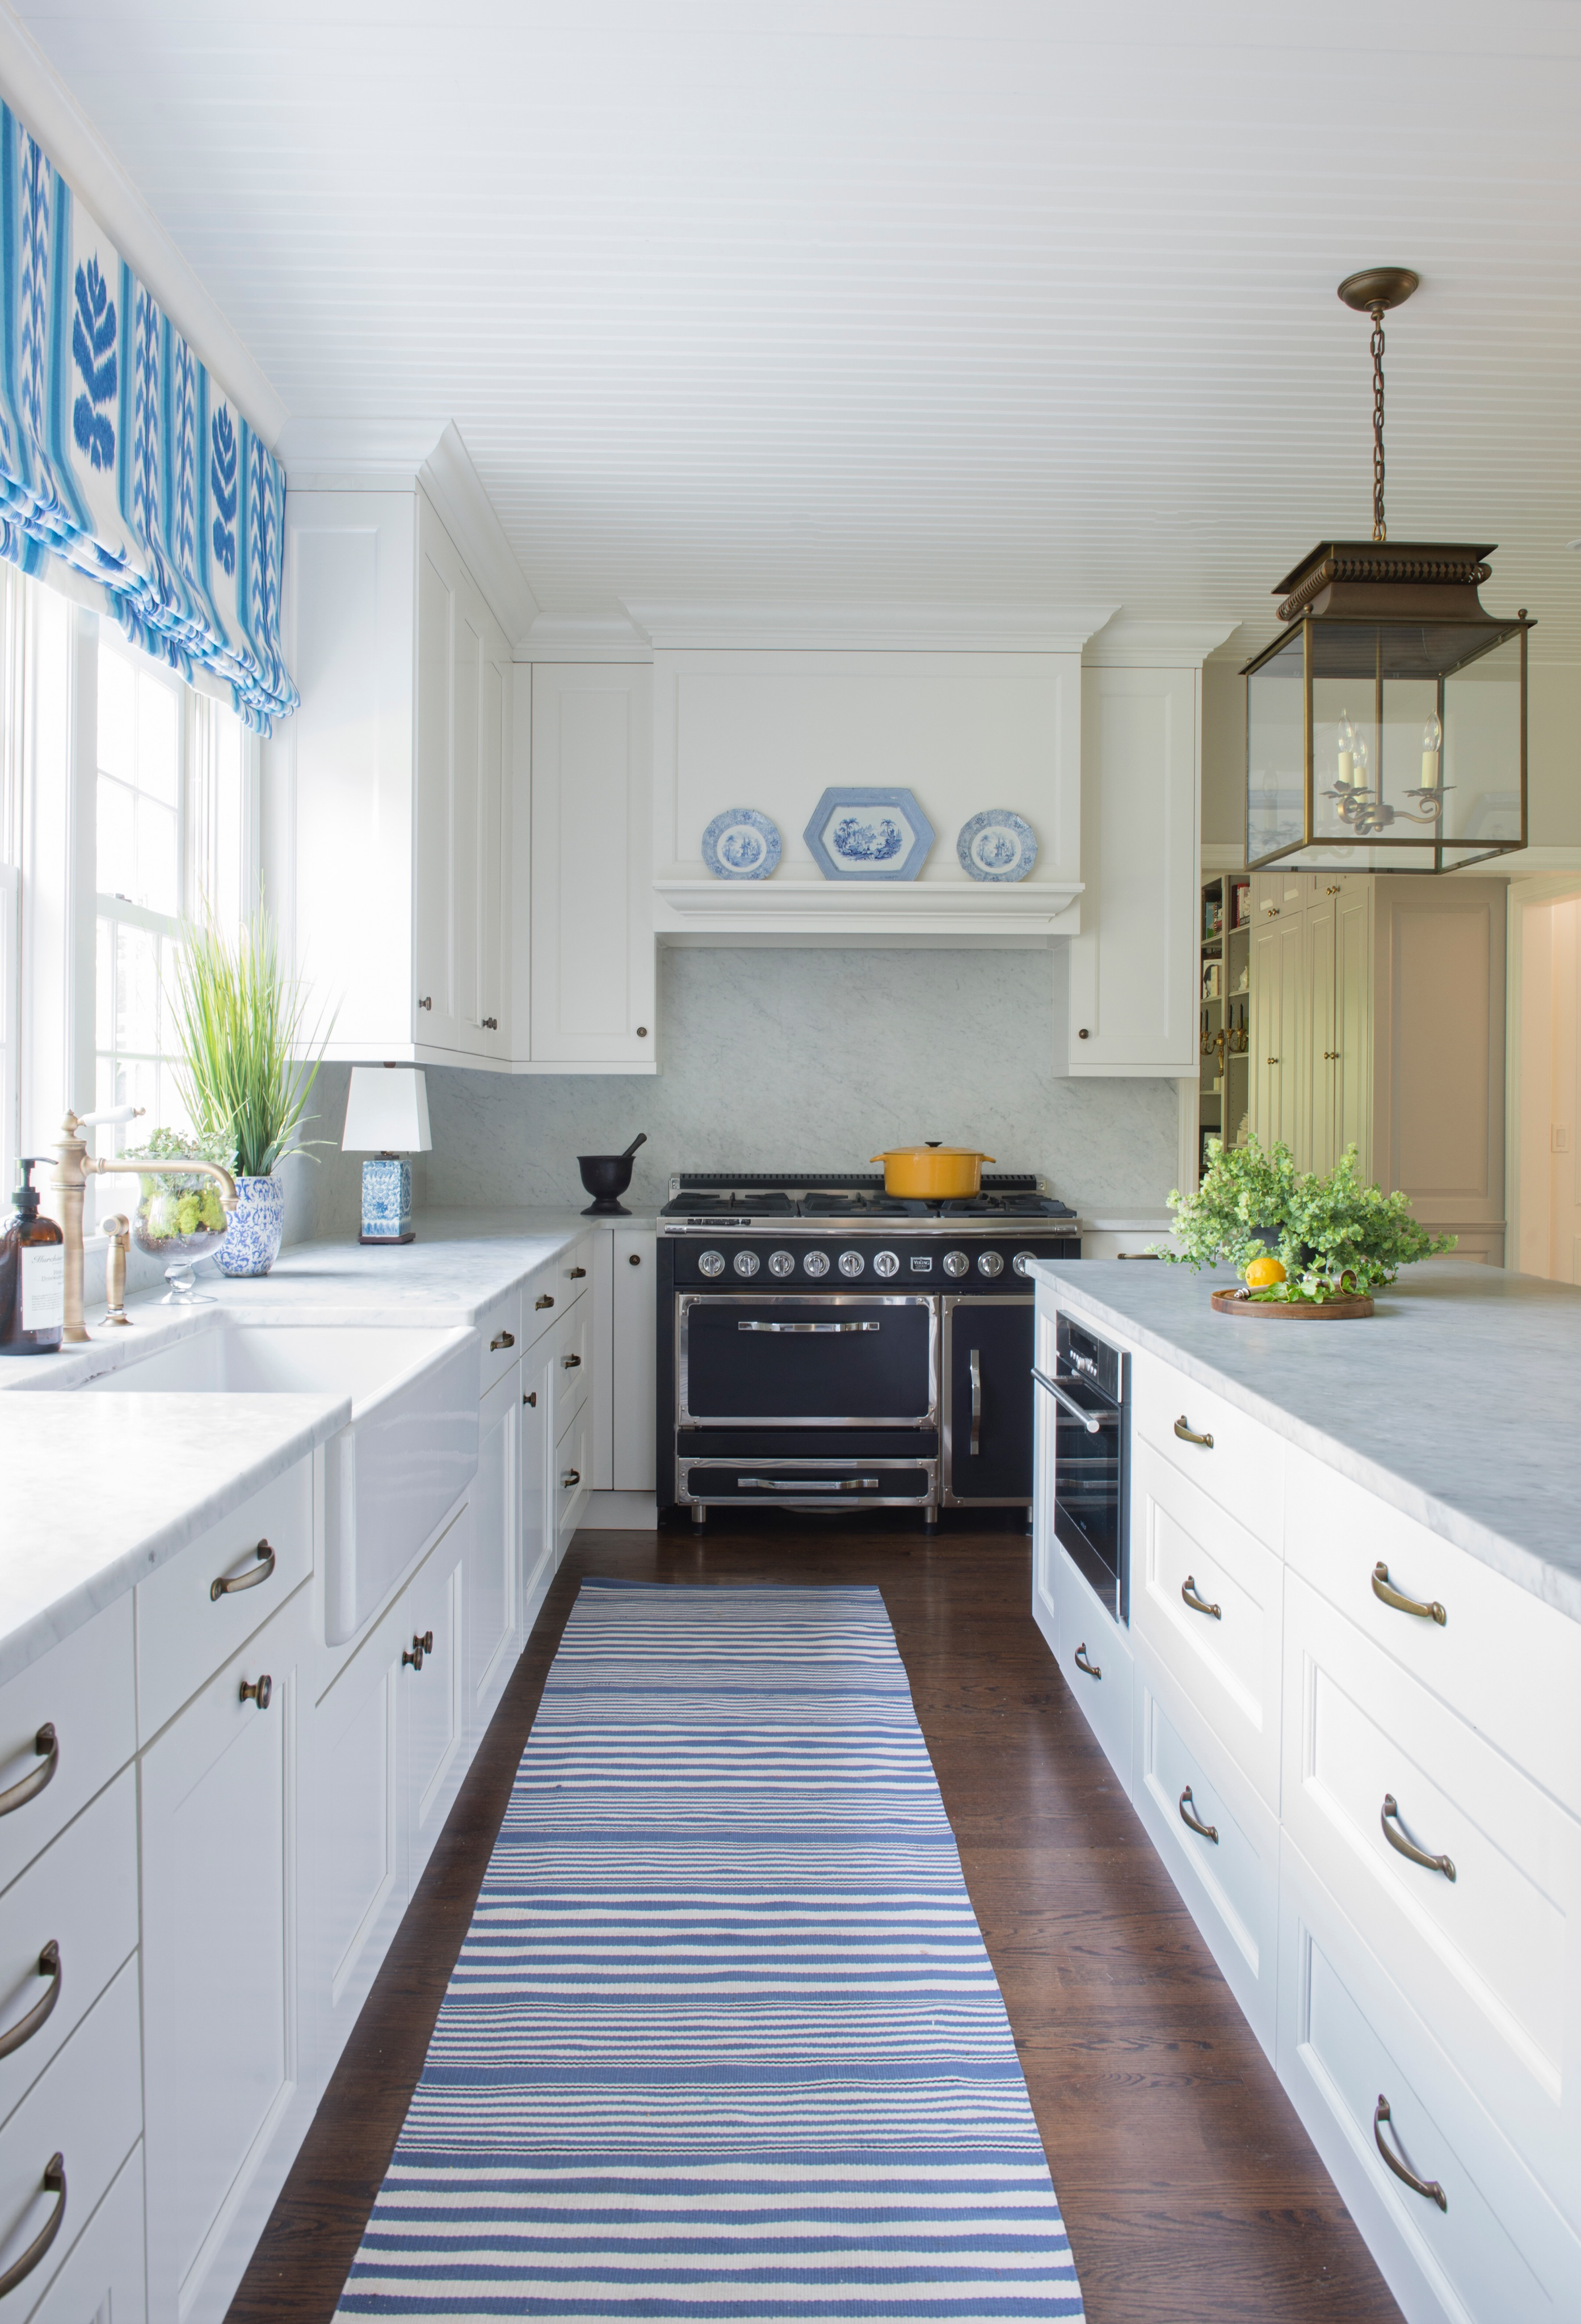 Spencer Cox Interiors Contemporary Kitchen  Interior Design New Canaan.JPG